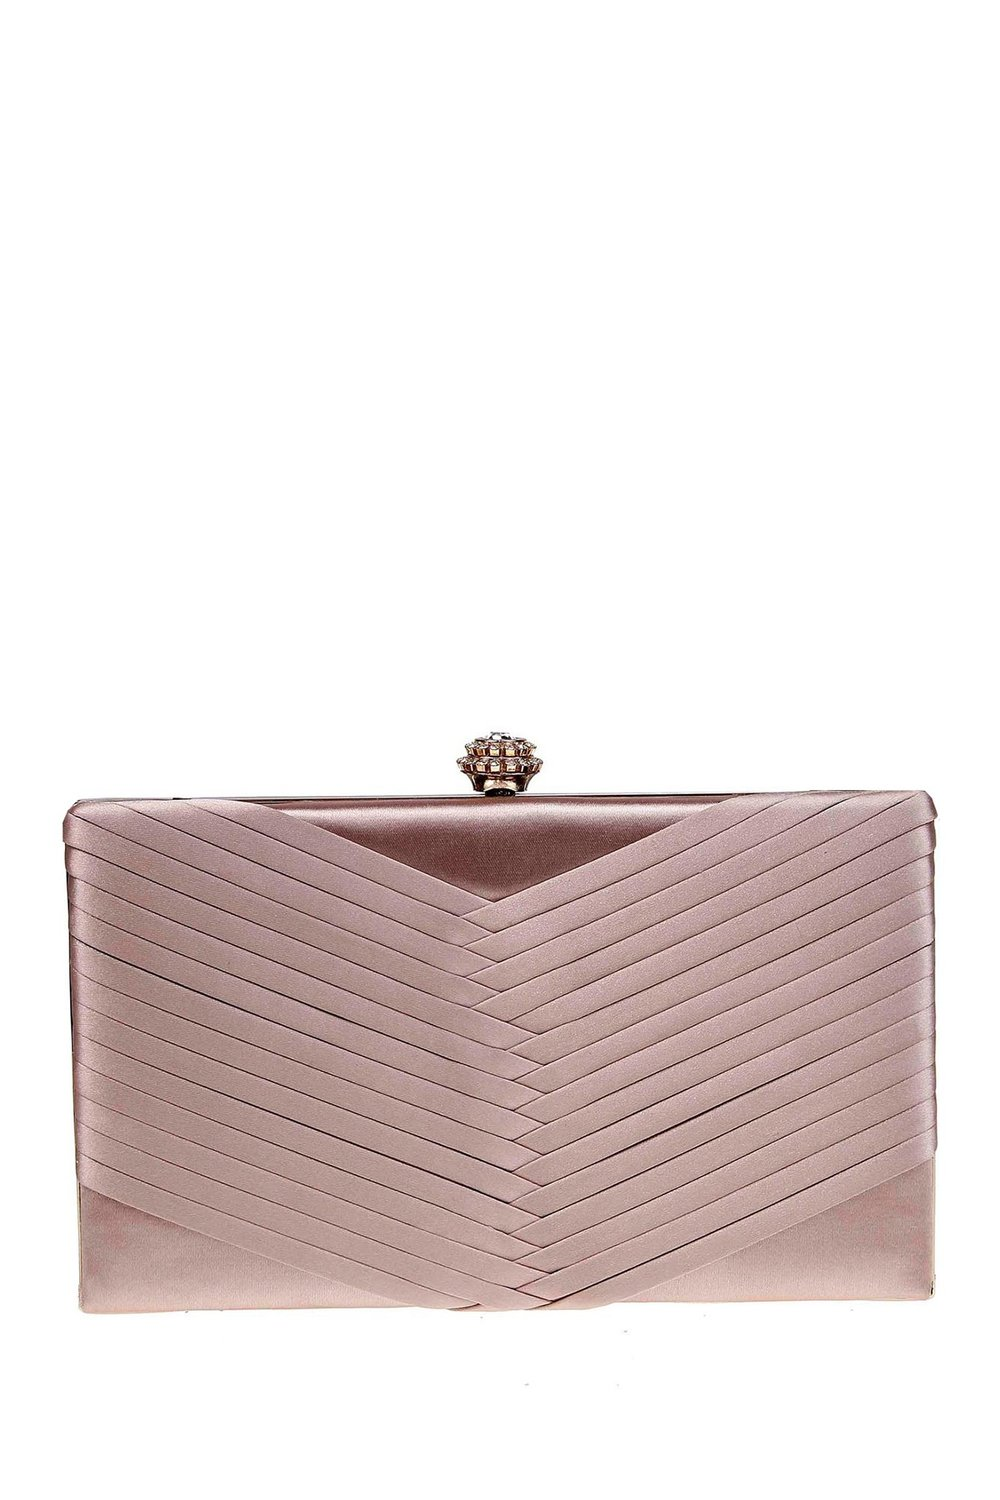 Badgley Mischka  Dish Box Clutch. Available in multiple colors. Nordstrom Rack. Was; $250. Now: $119.